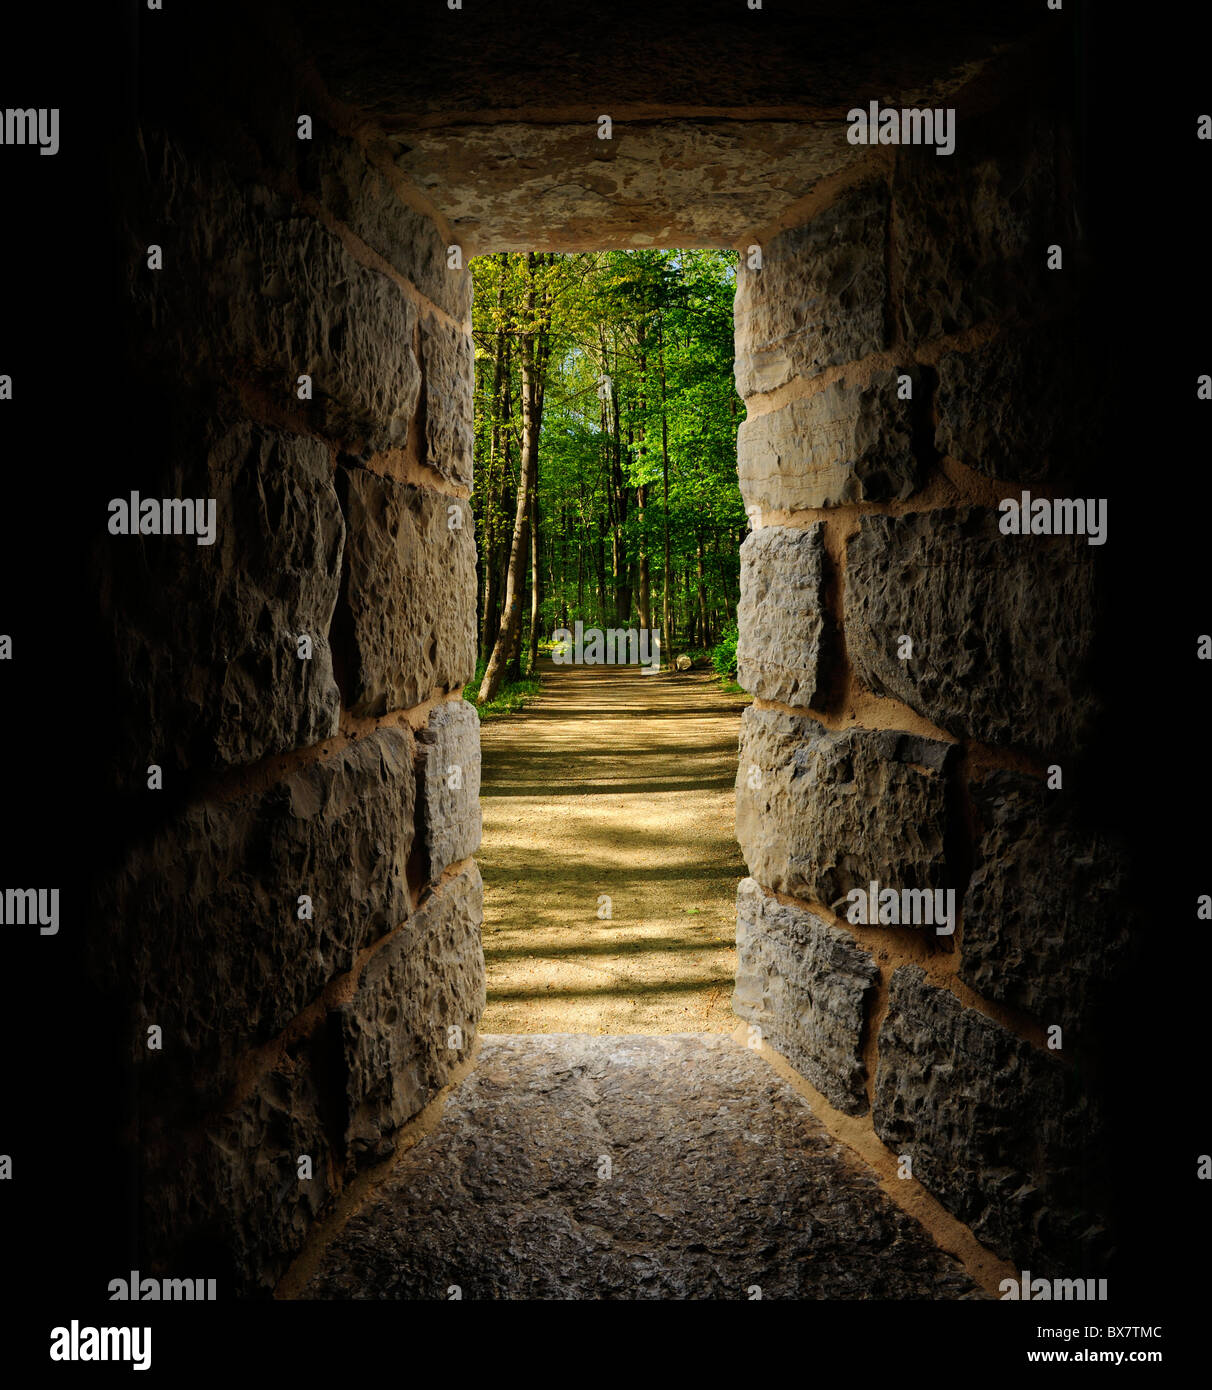 Path through trees as viewed out of a castle-like stone window or passage - Stock Image